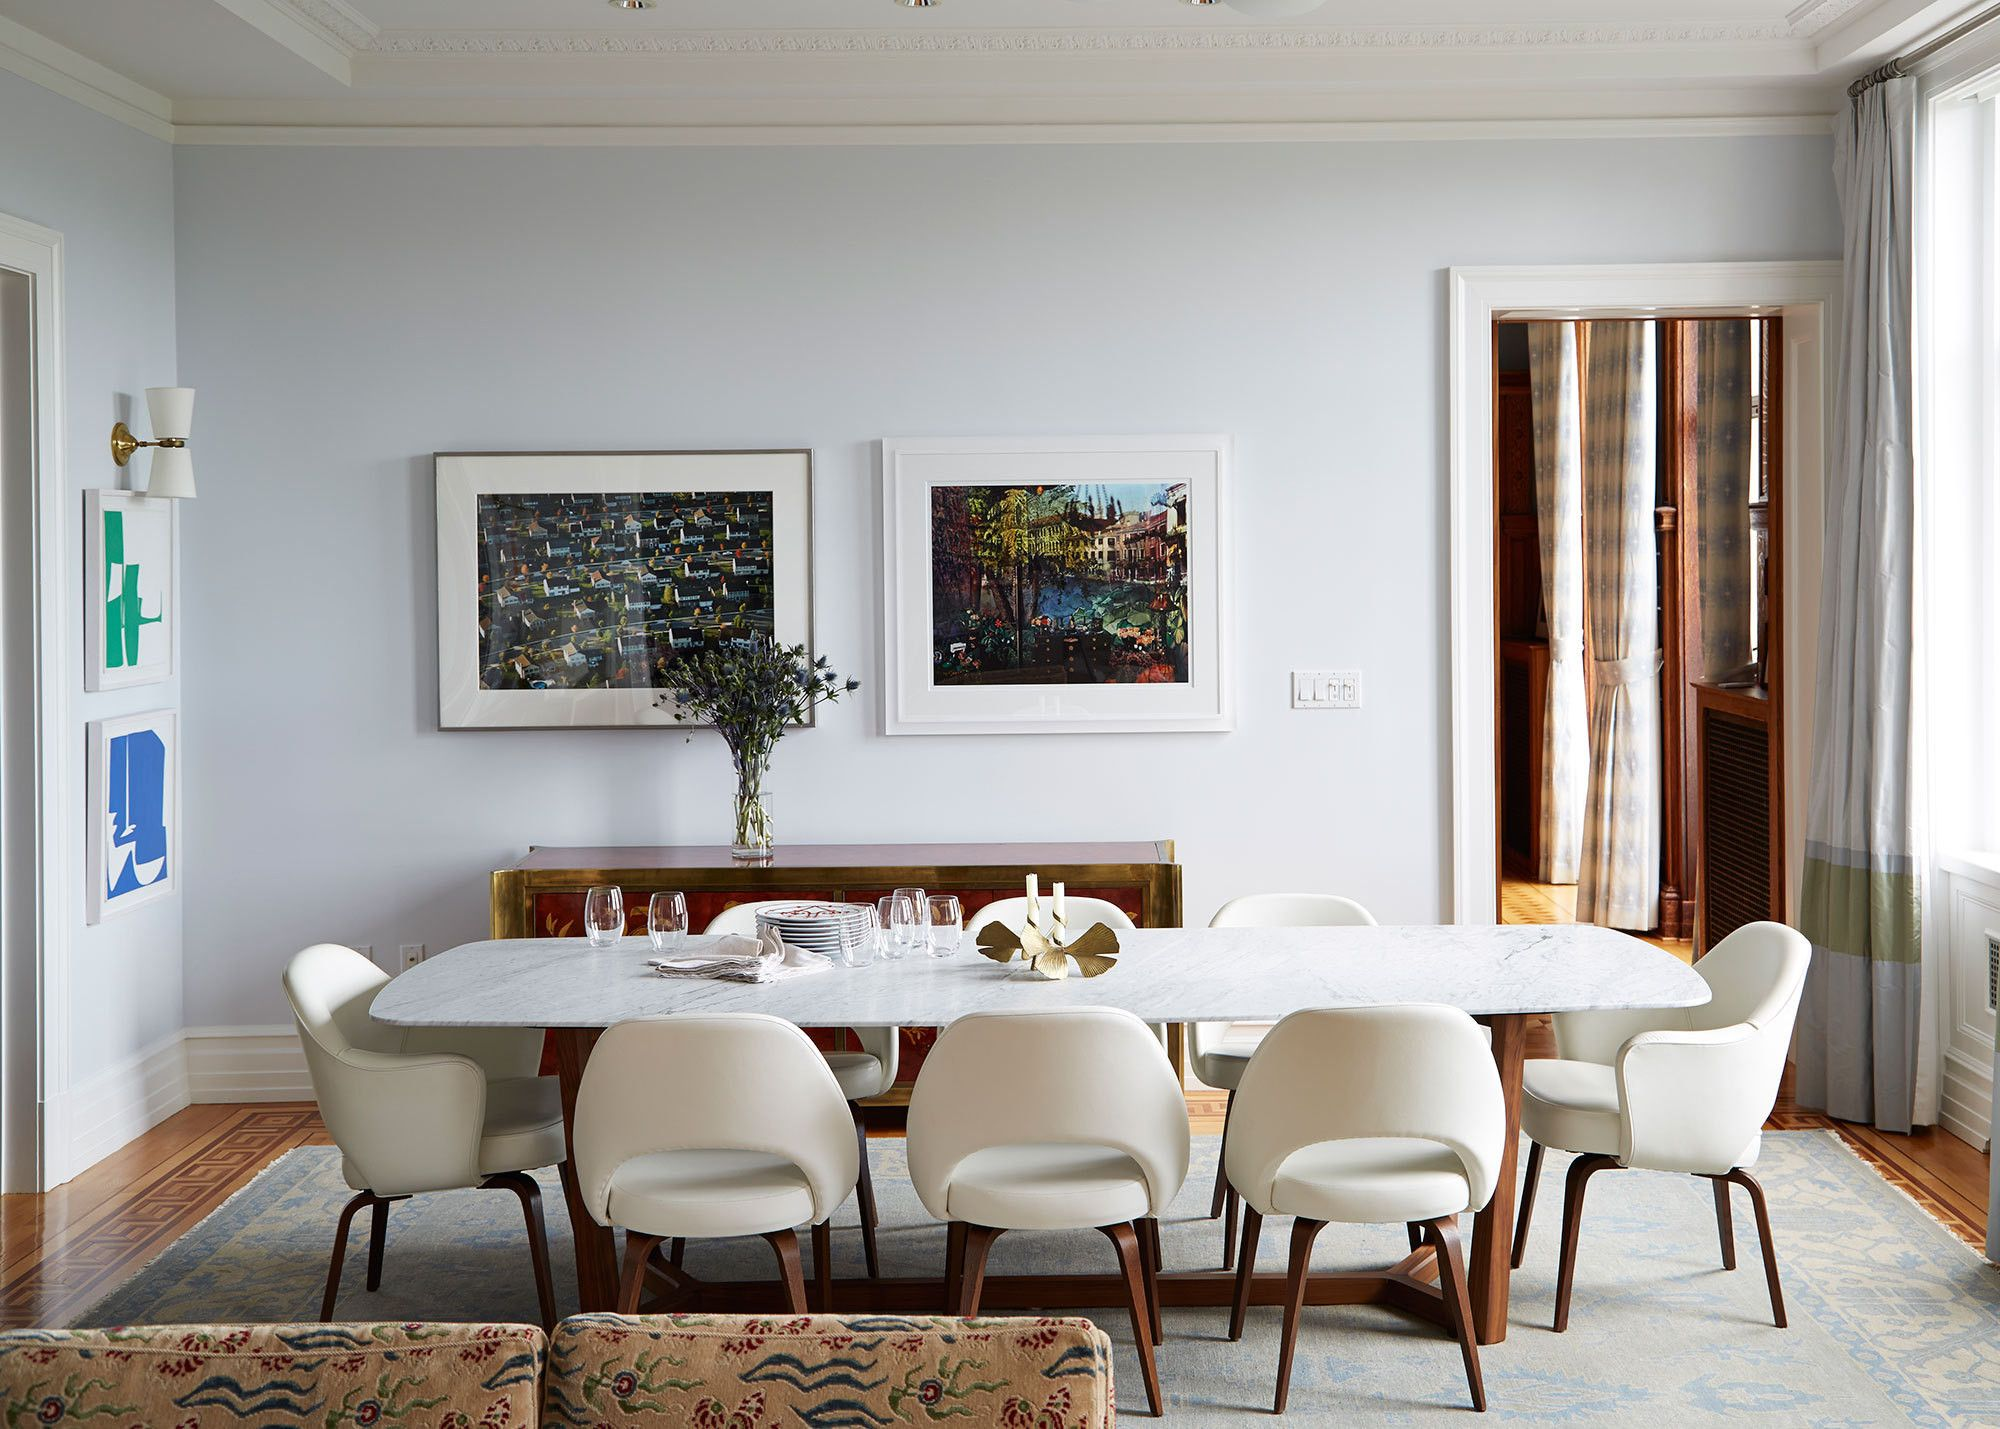 The Dining Room Adjoins Open Living Area And Is Grounded By Cool Toned